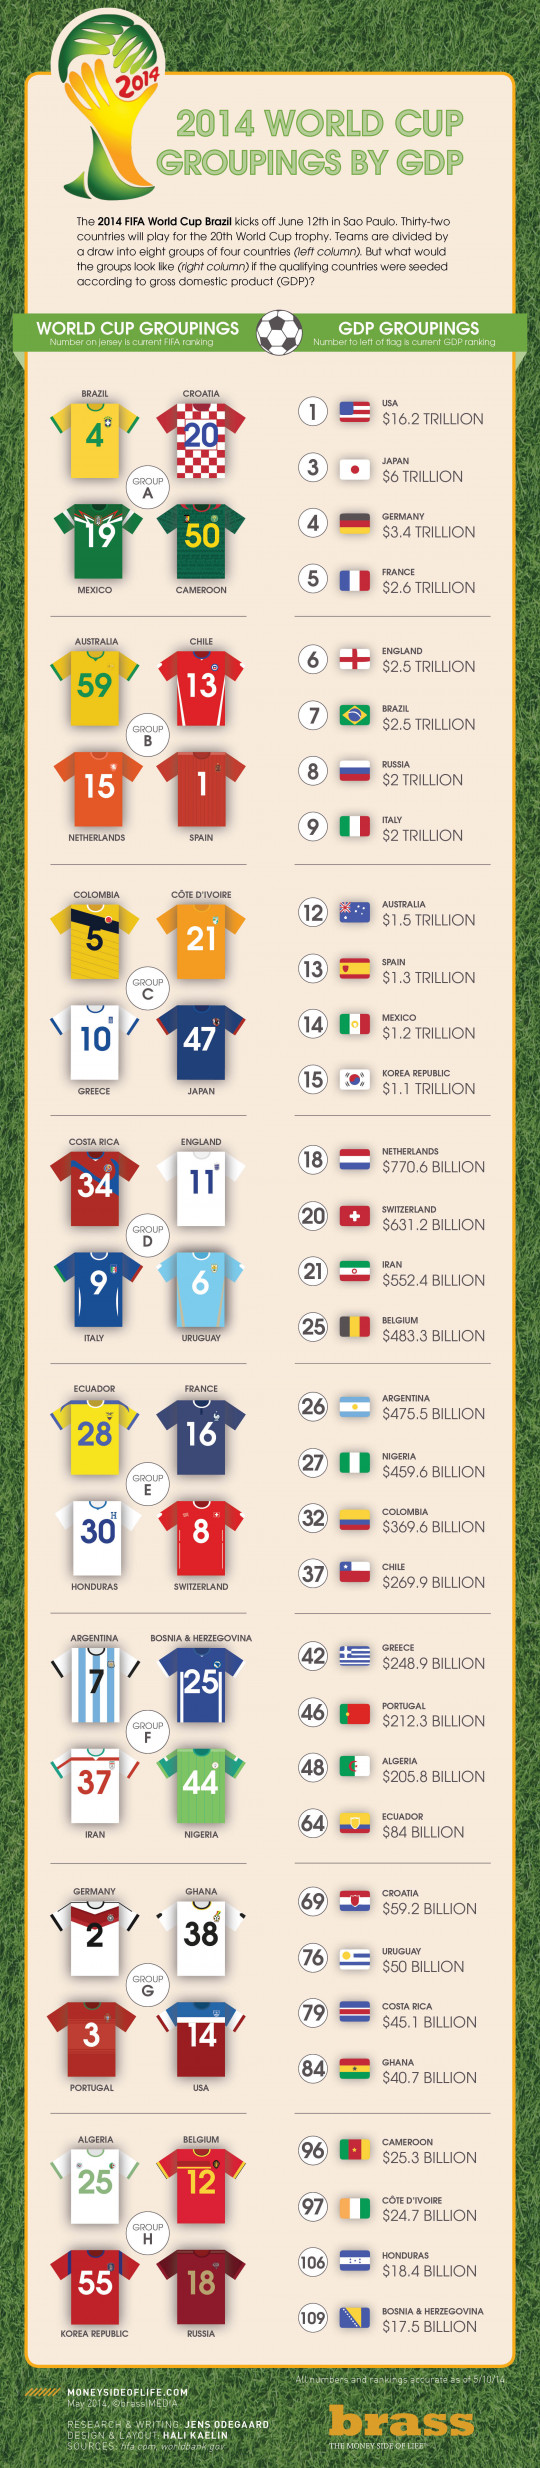 2014 World Cup Groupings by GDP